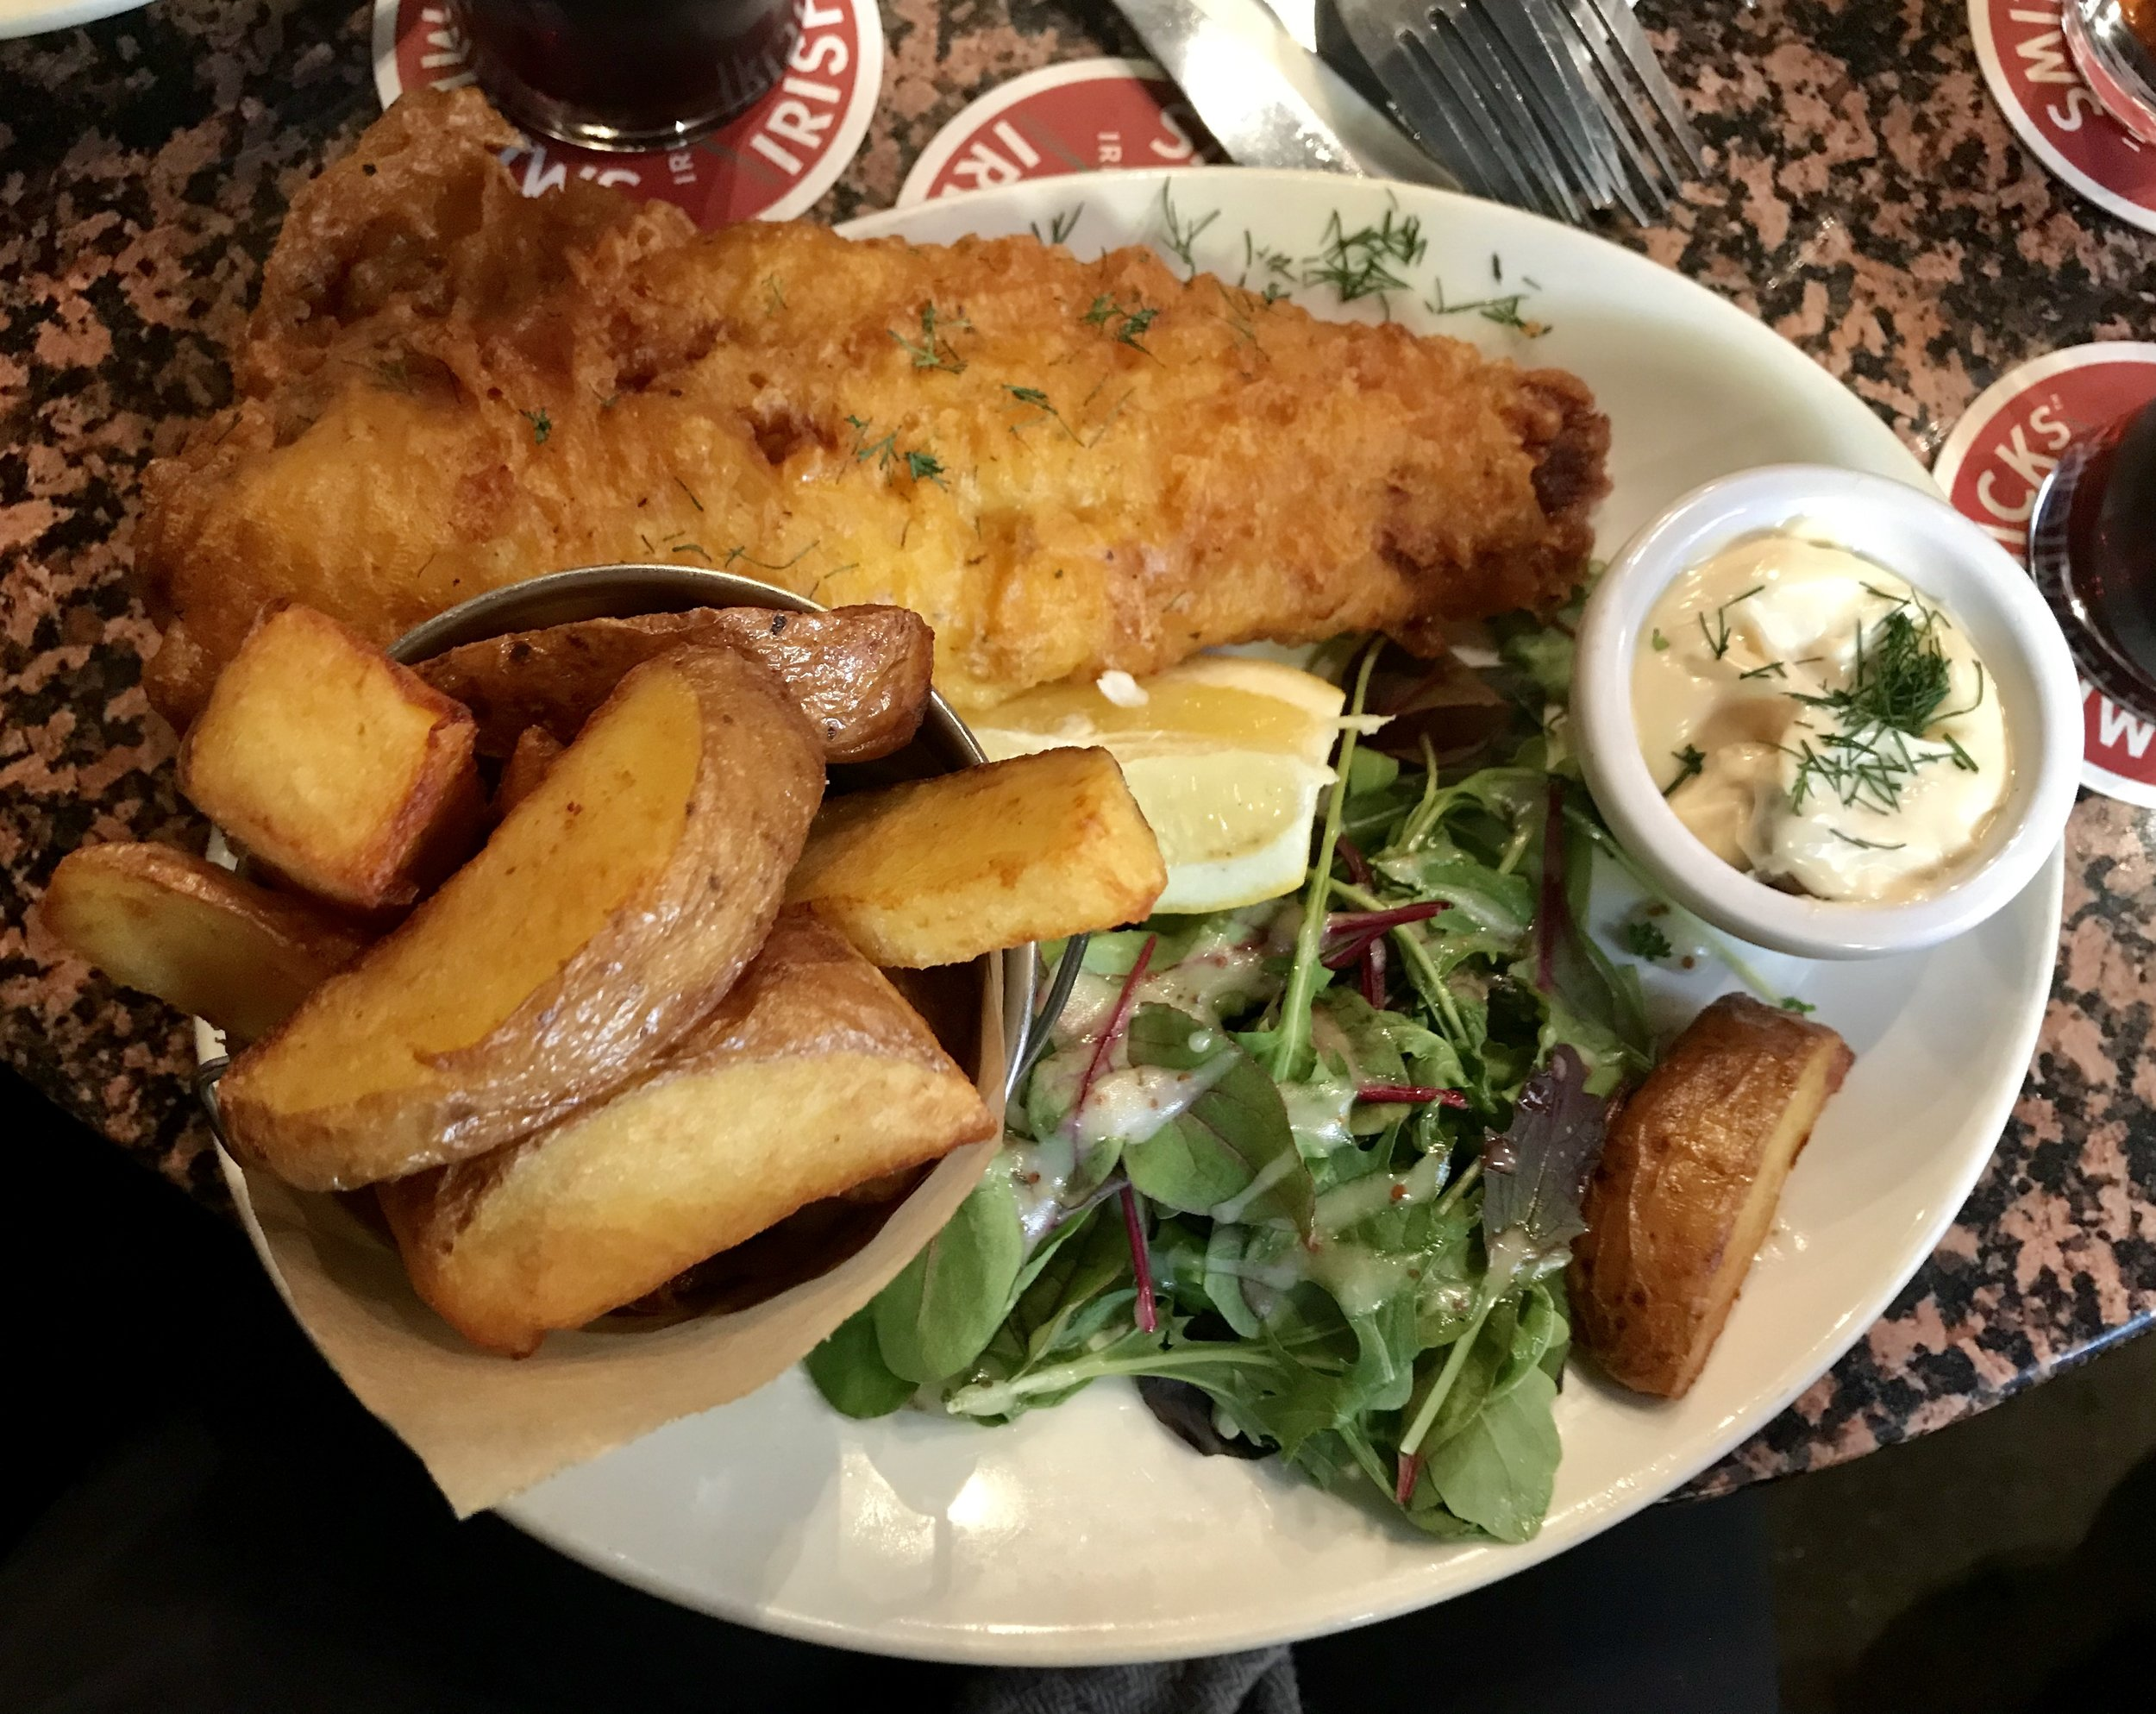 Dublin, Fish and Chips #2, iPhone 7